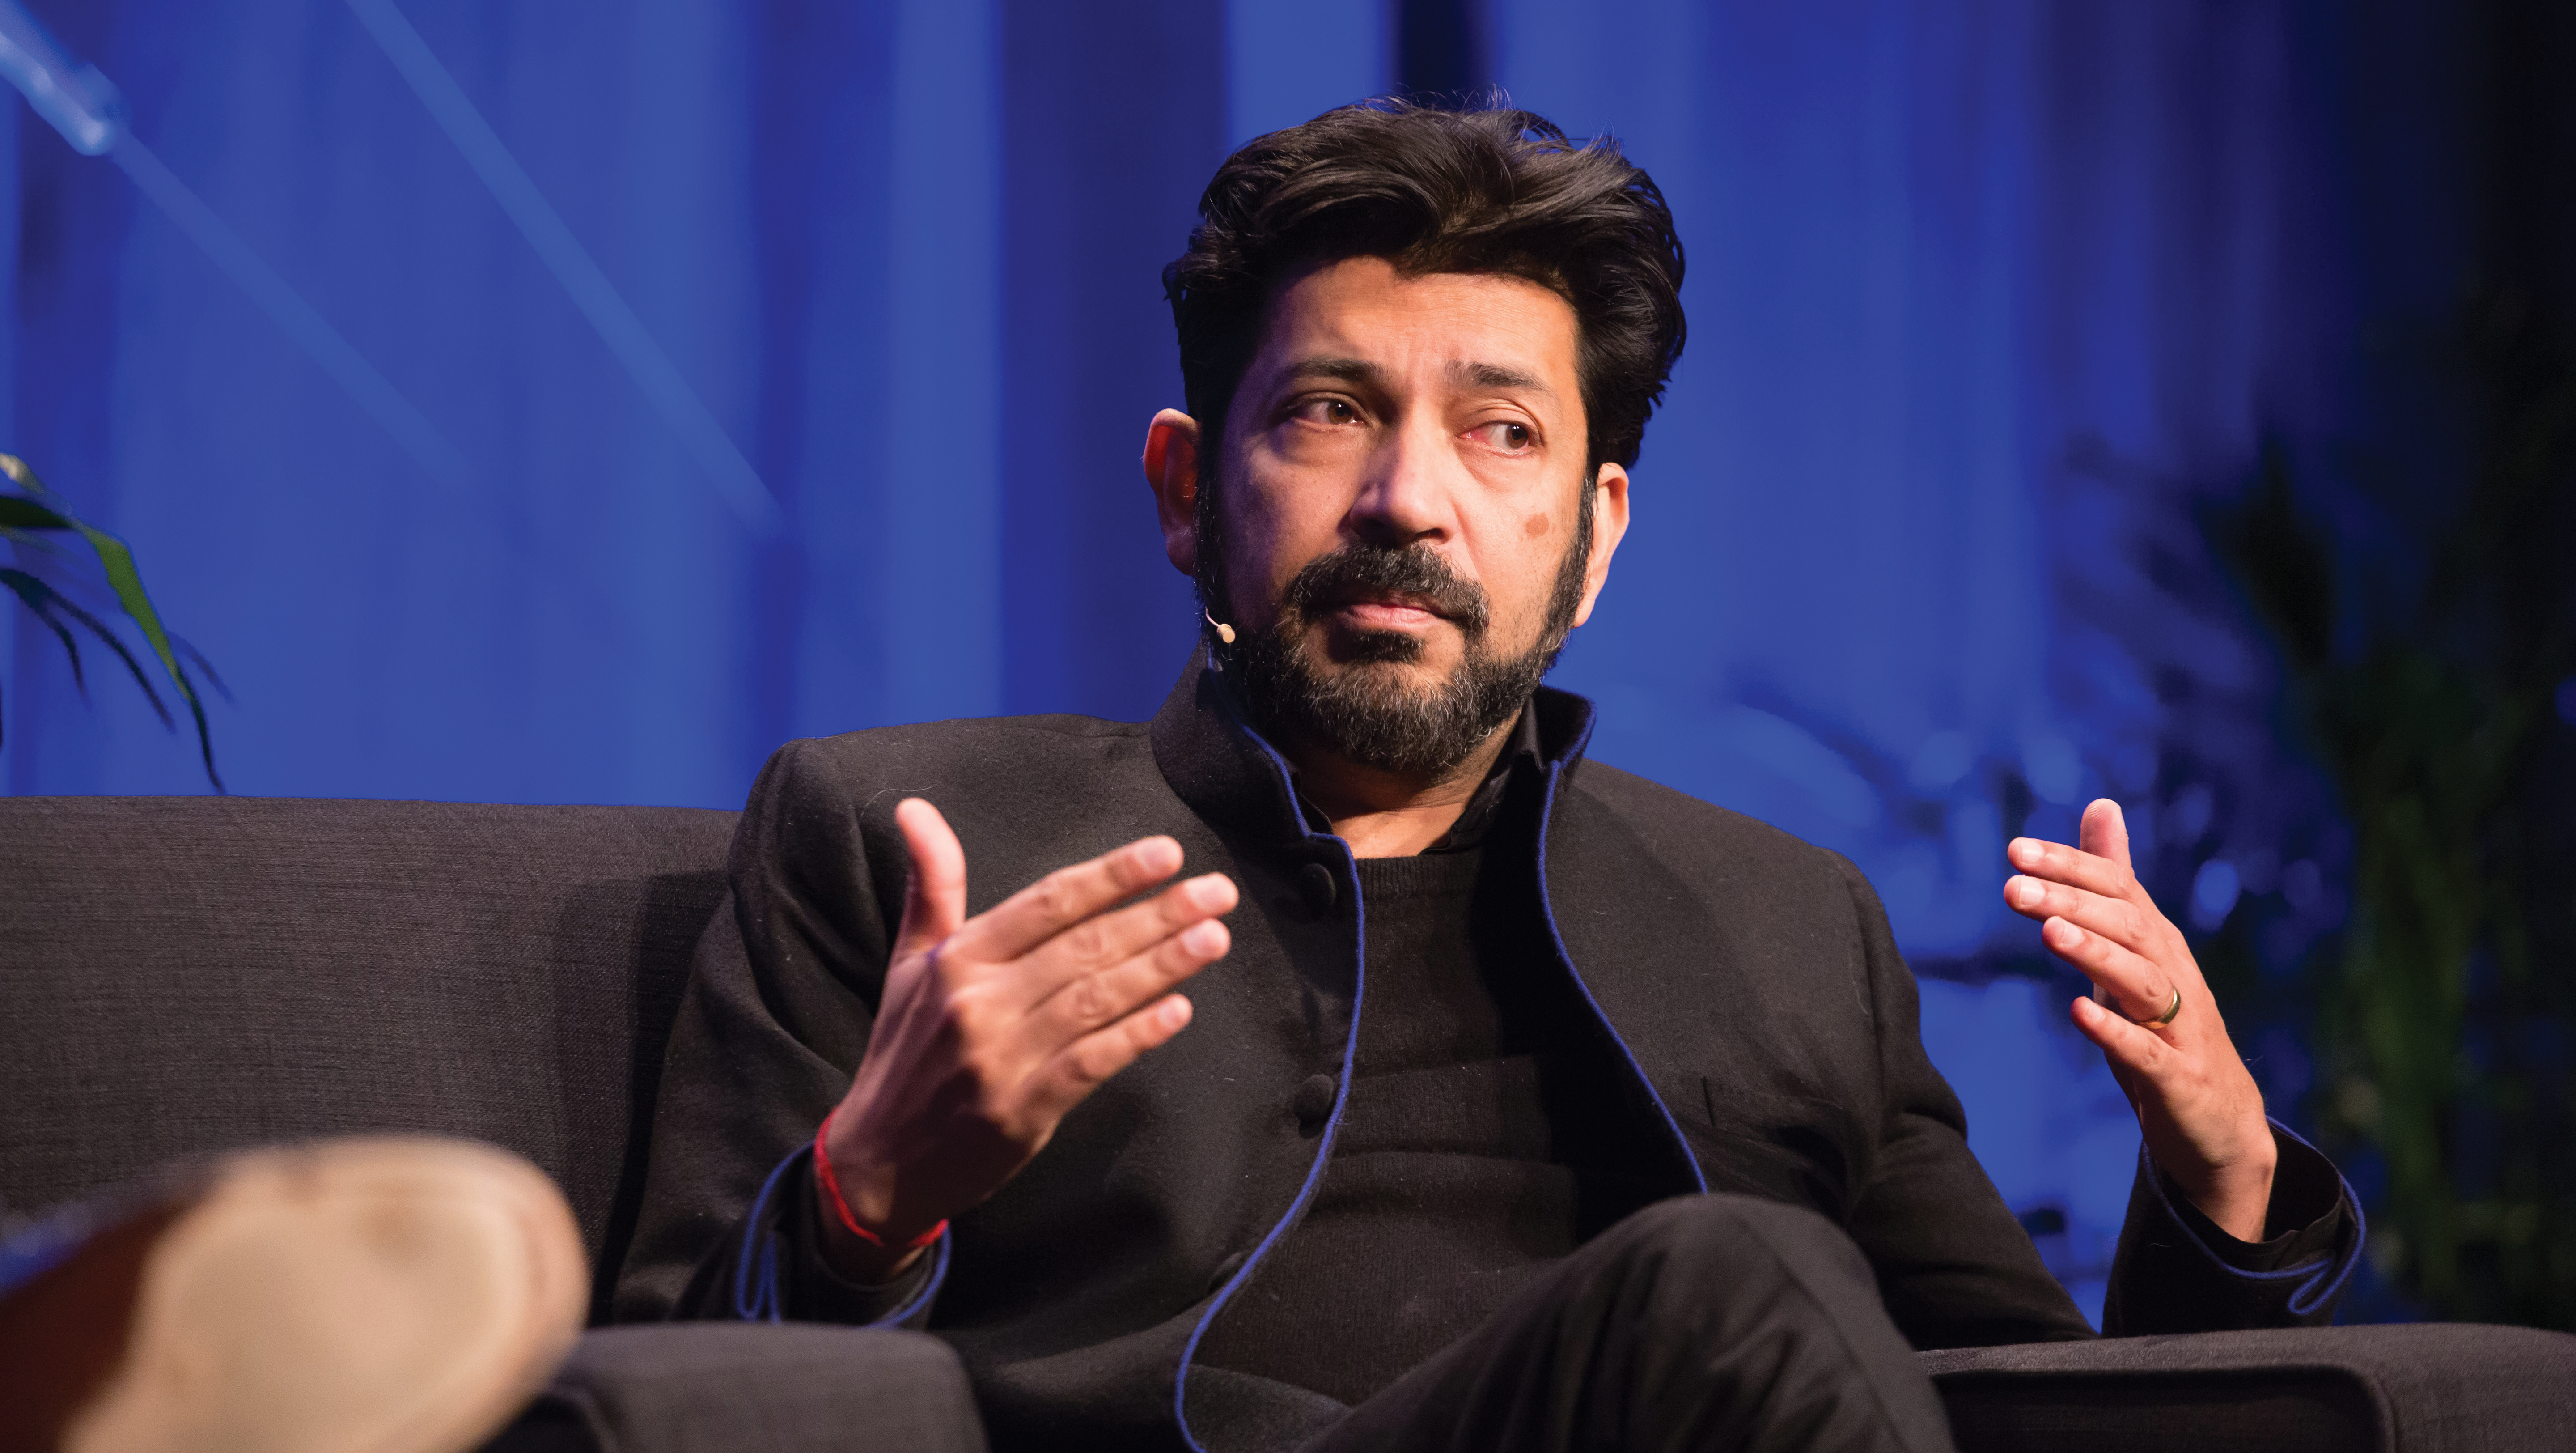 Siddharta Mukherjee, oncologist and Pulitzer Prize-winning author